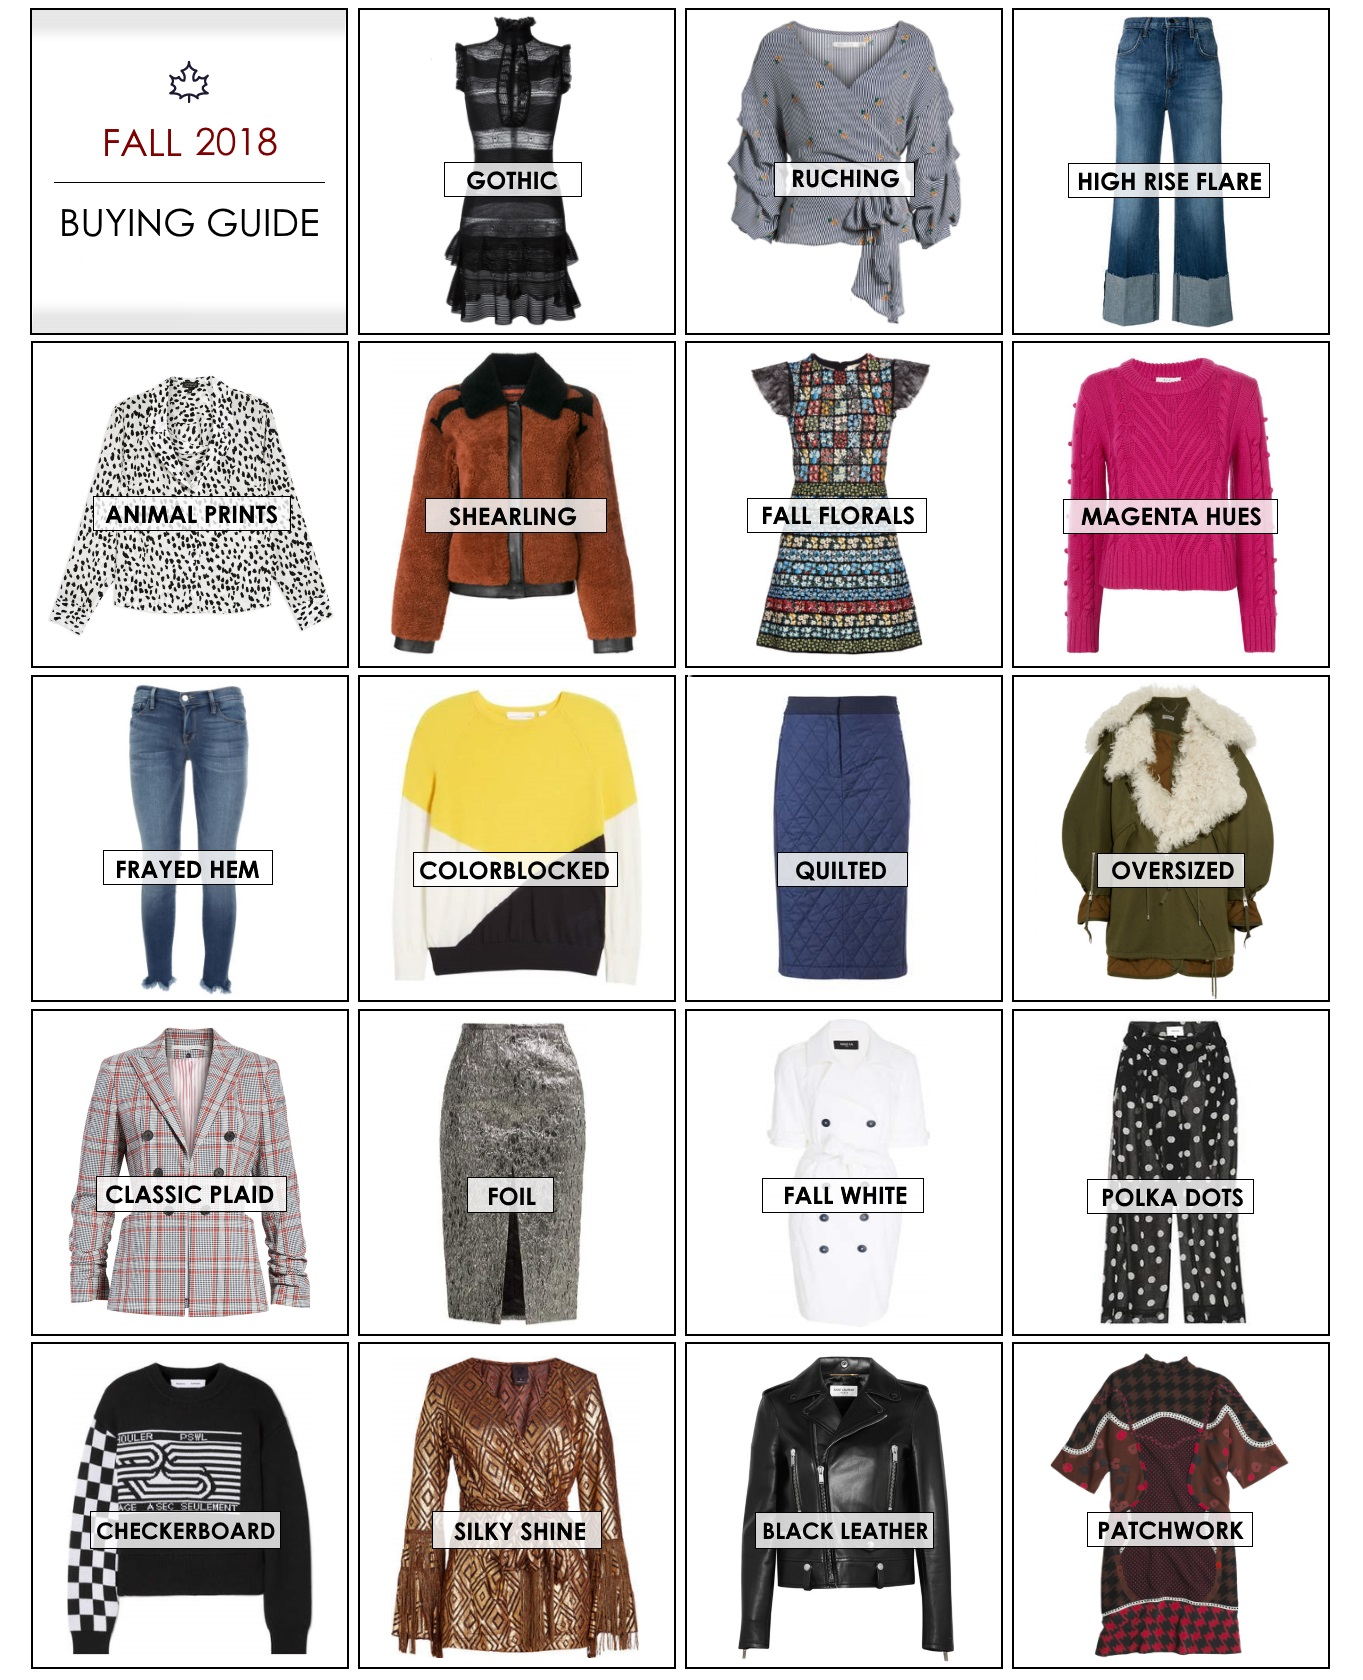 Plan To Consign Are Cur And On Trend Items Must Not Be More Than 2 3 Years Old Should Similar Styles Seen In S Now Like New